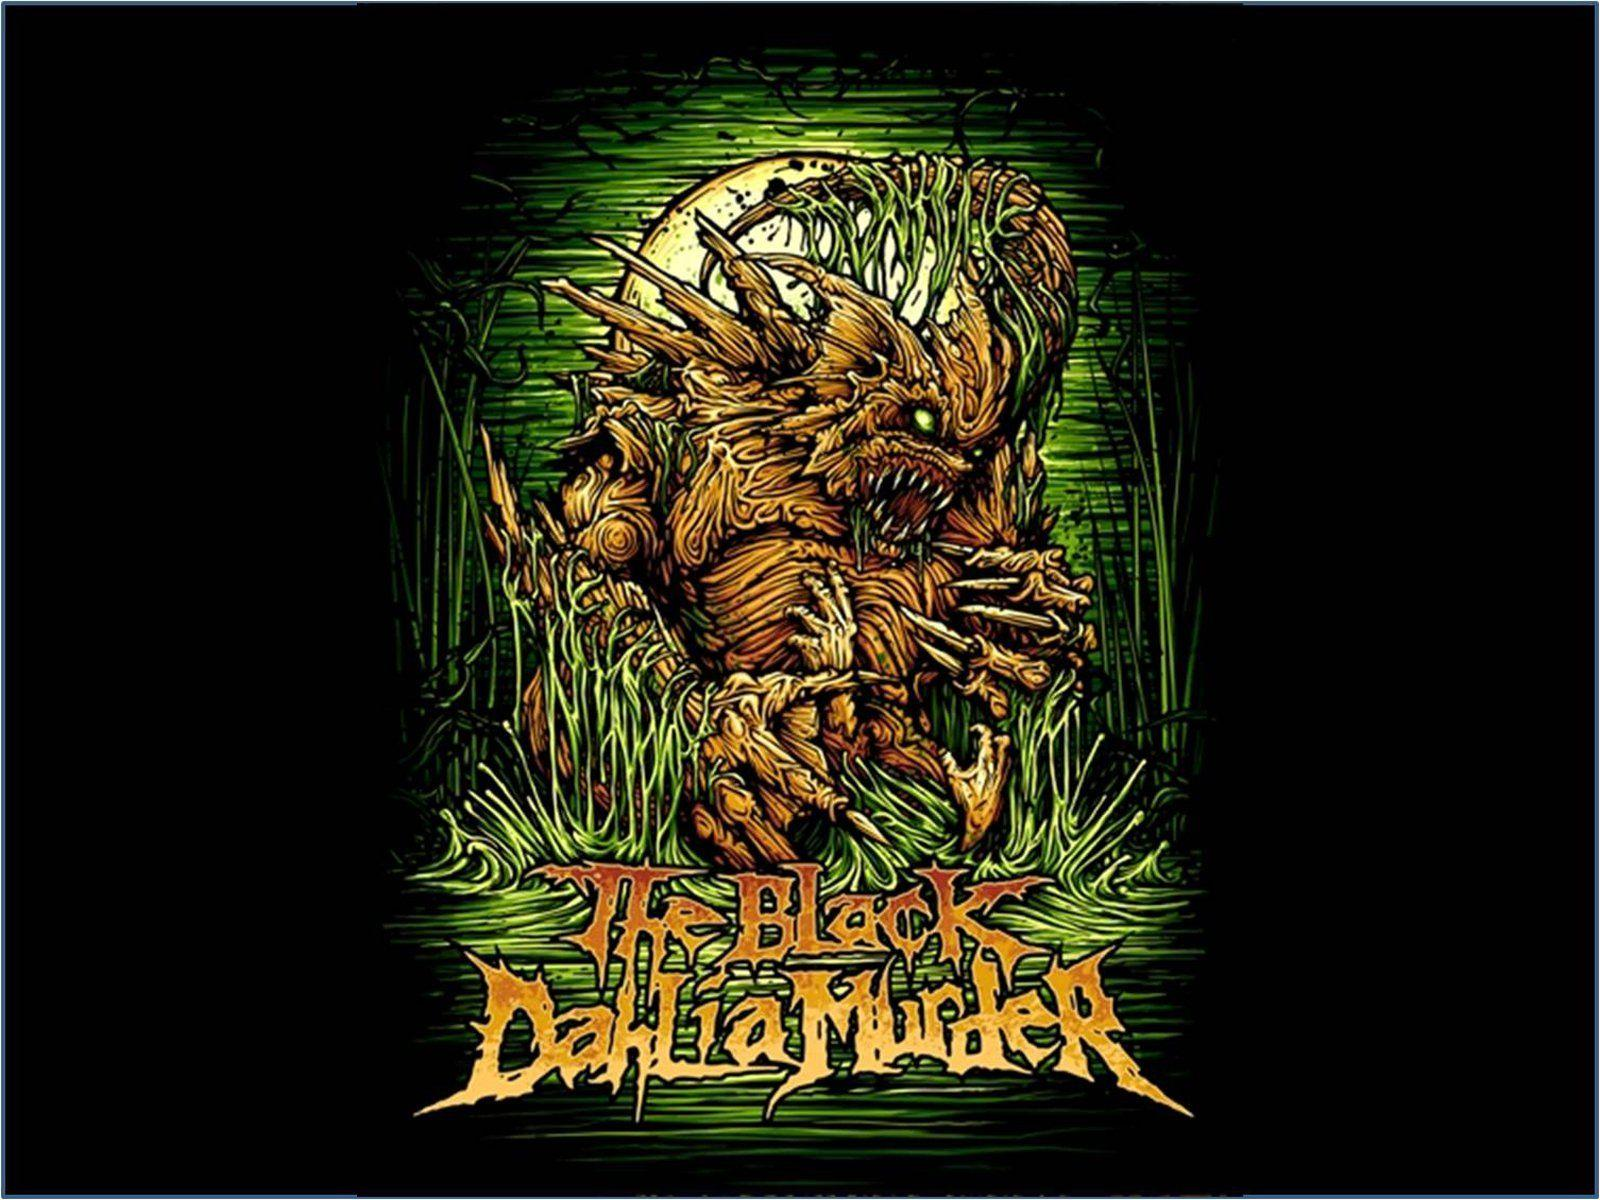 The Black Dahlia Murder Wallpapers Wallpaper Cave